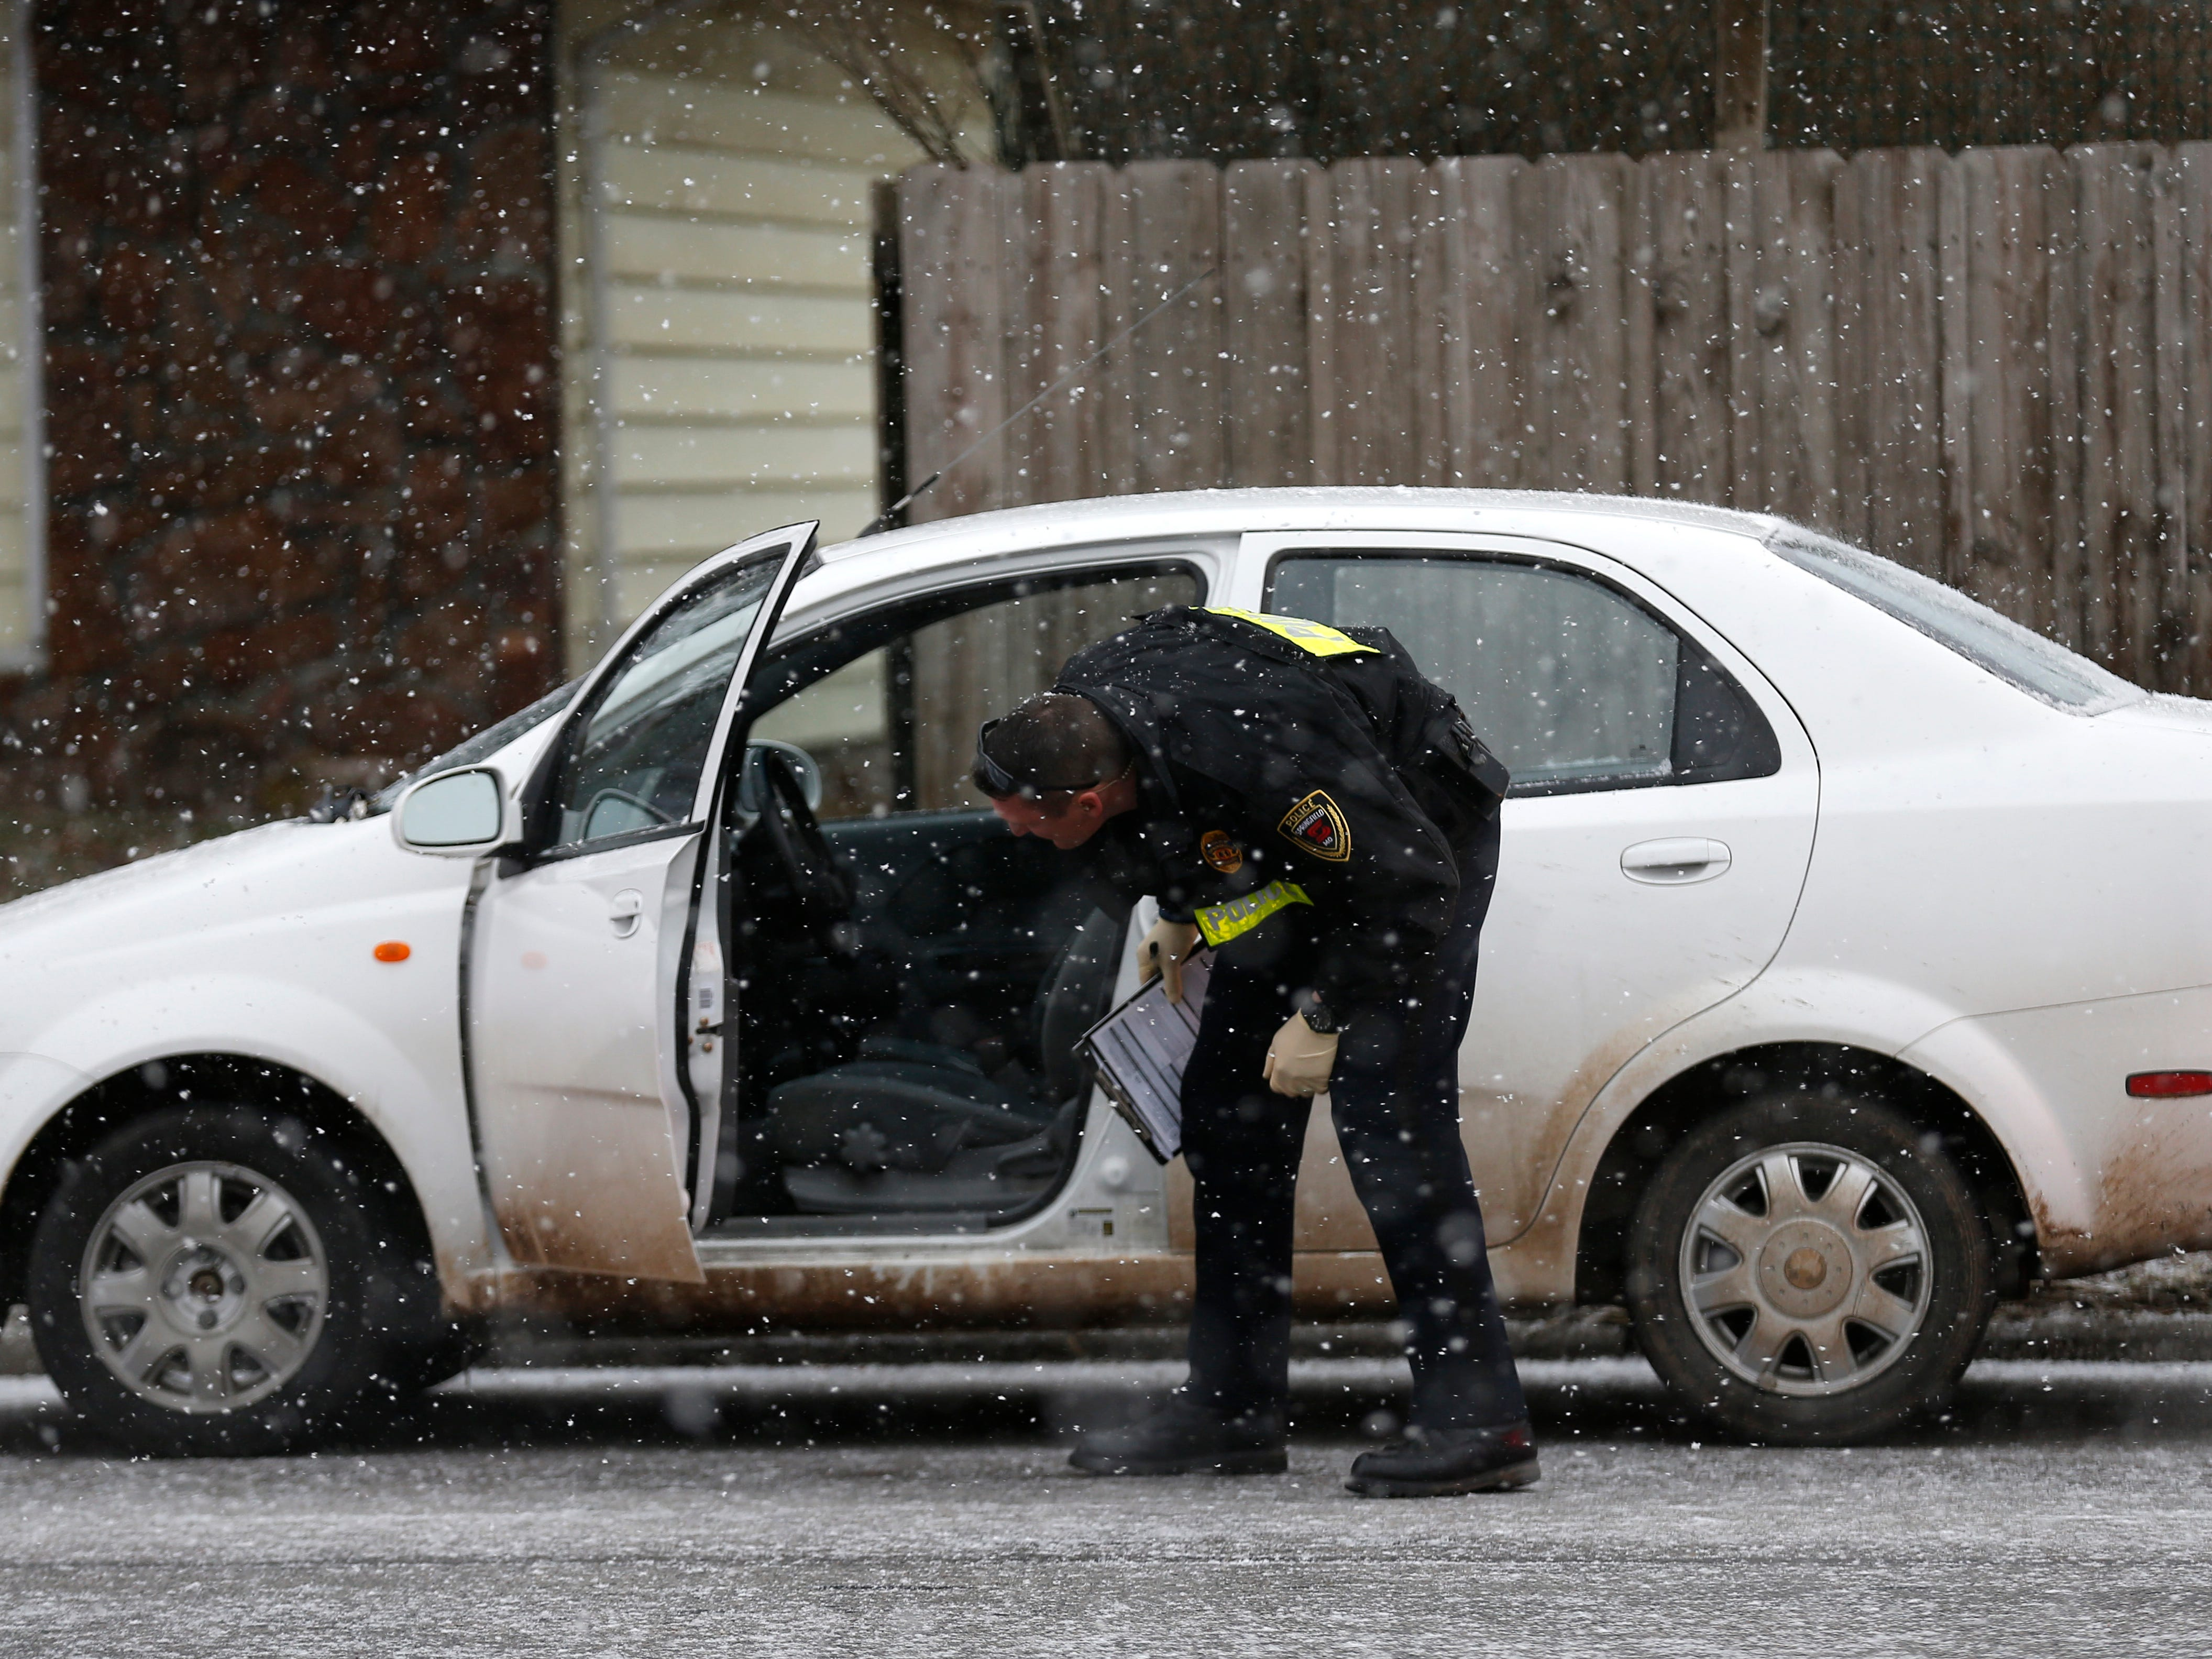 Springfield Police stopped a car on South National Avenue as part of an investigation into a shooting on West Downing Street on Thursday, Feb. 7, 2019.